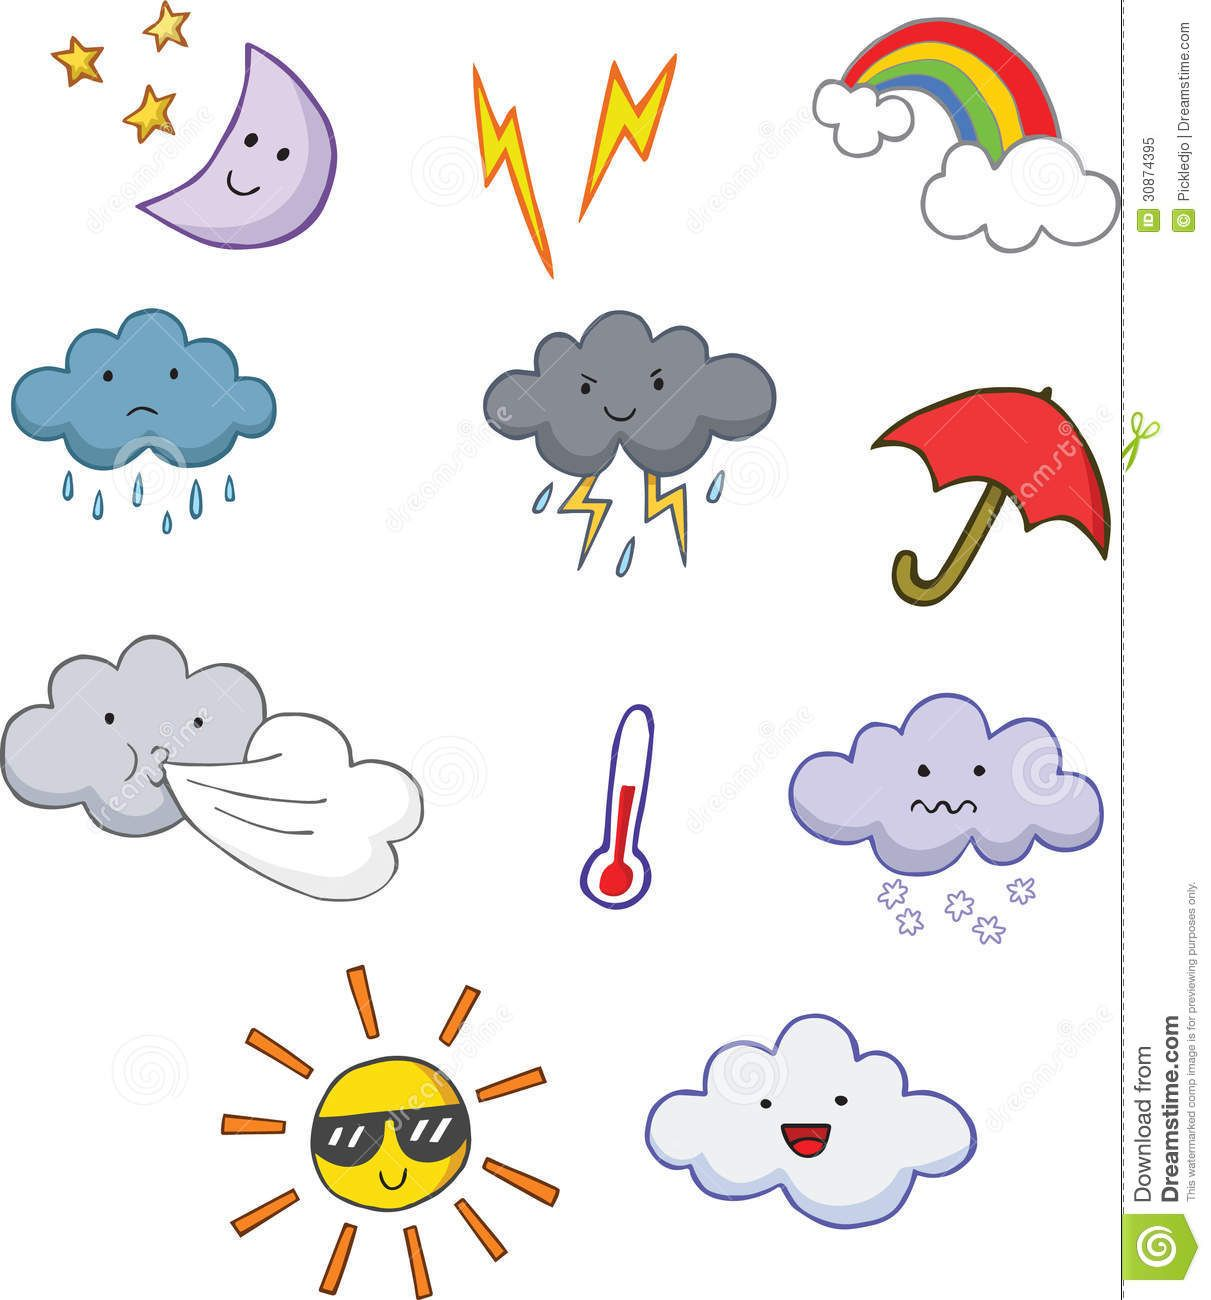 Fun Cute Cartoon Weather Symbols.